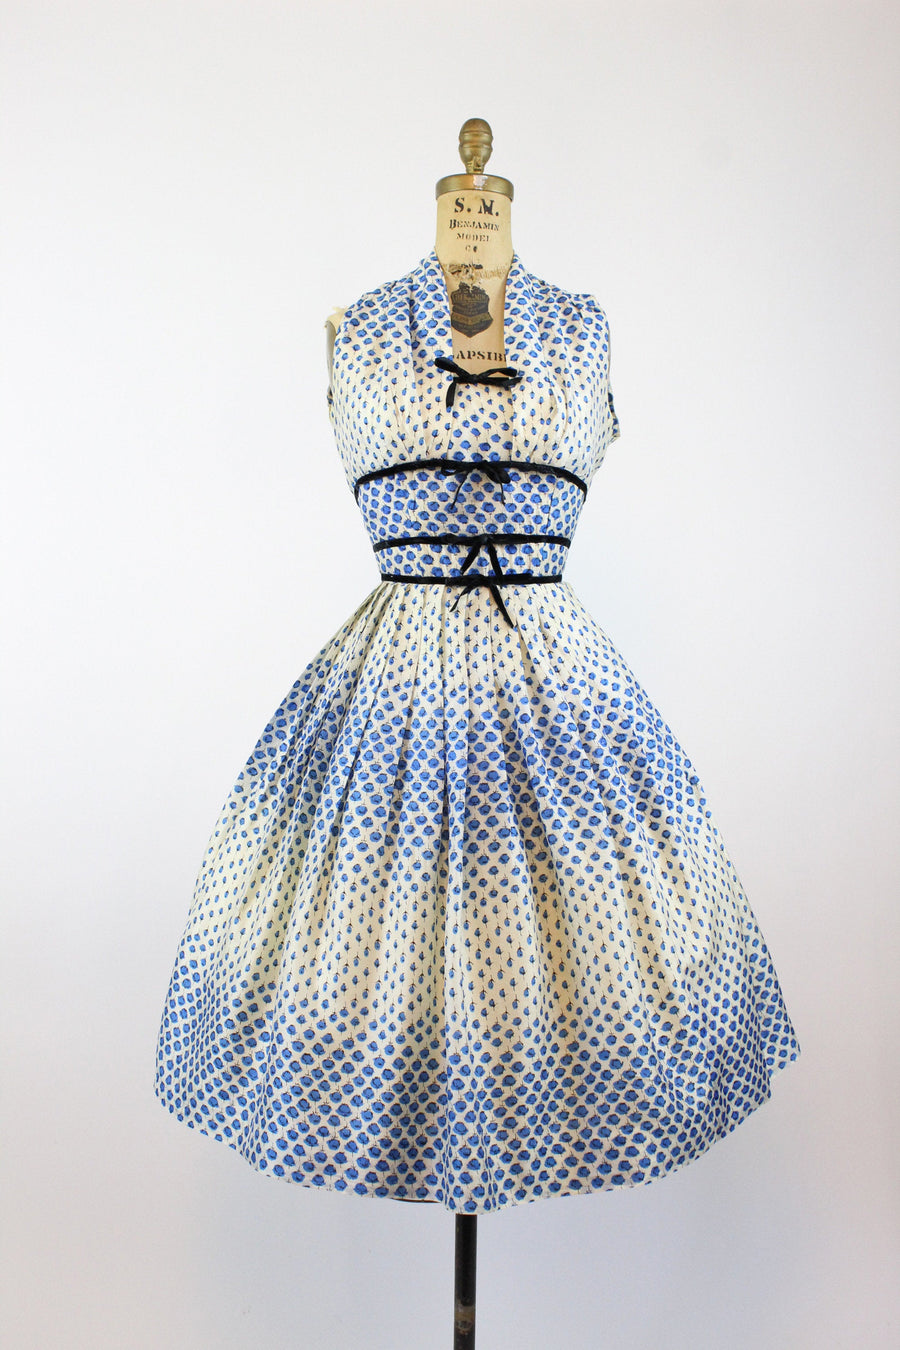 1950s Best & Co blue roses strapless dress xxs | vintage silk dress | new in